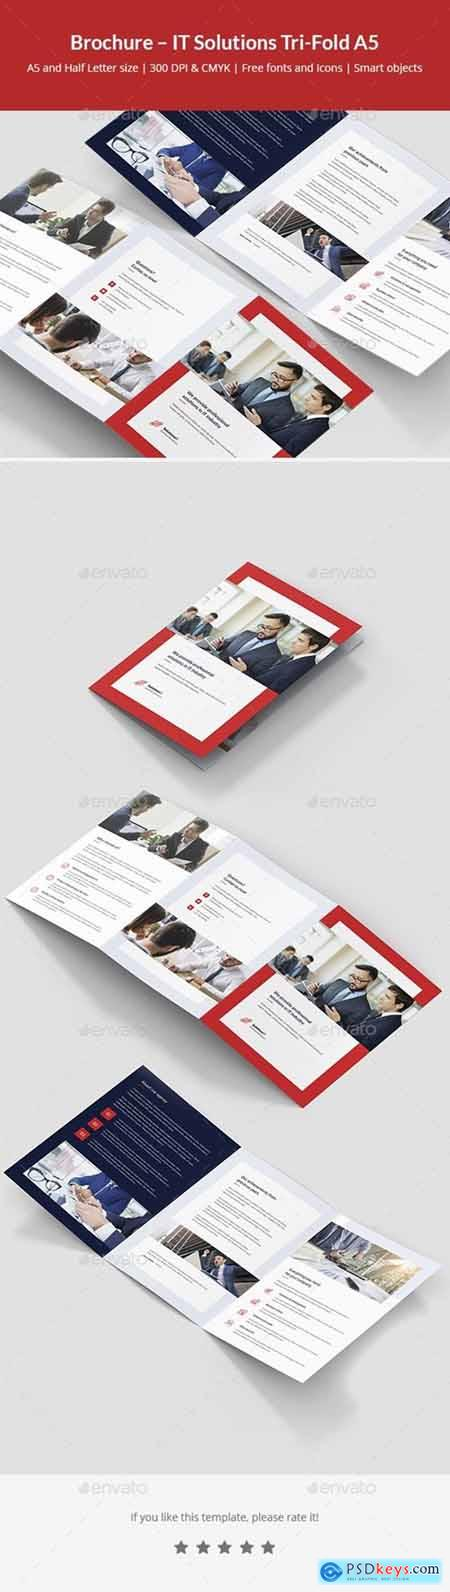 Brochure – IT Solutions Tri-Fold A5 23854003